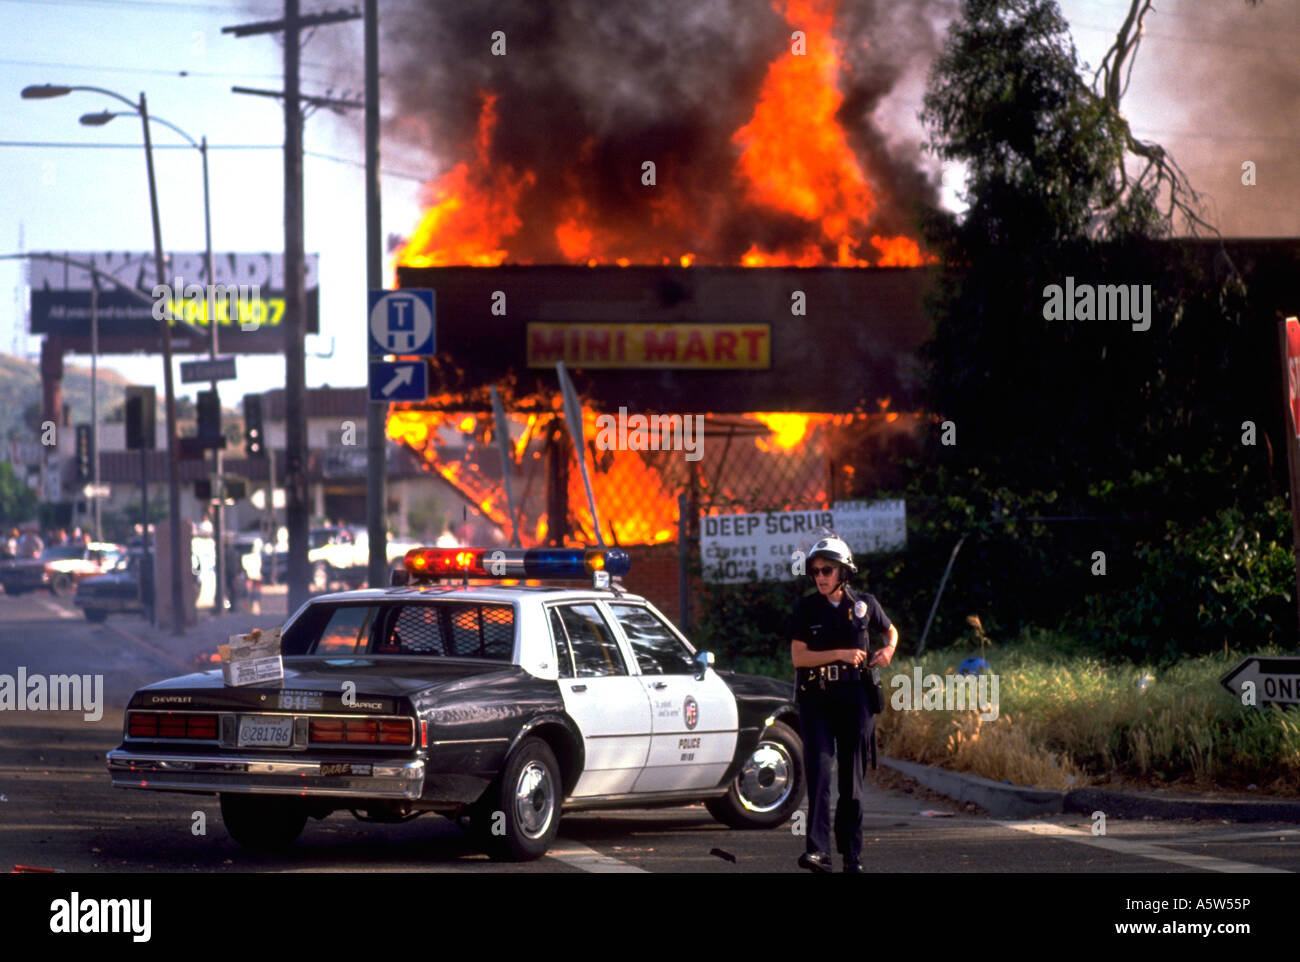 Painet hl0989 scene los angeles riots 1992 california destruction fire flames burning building police cars smoke - Stock Image